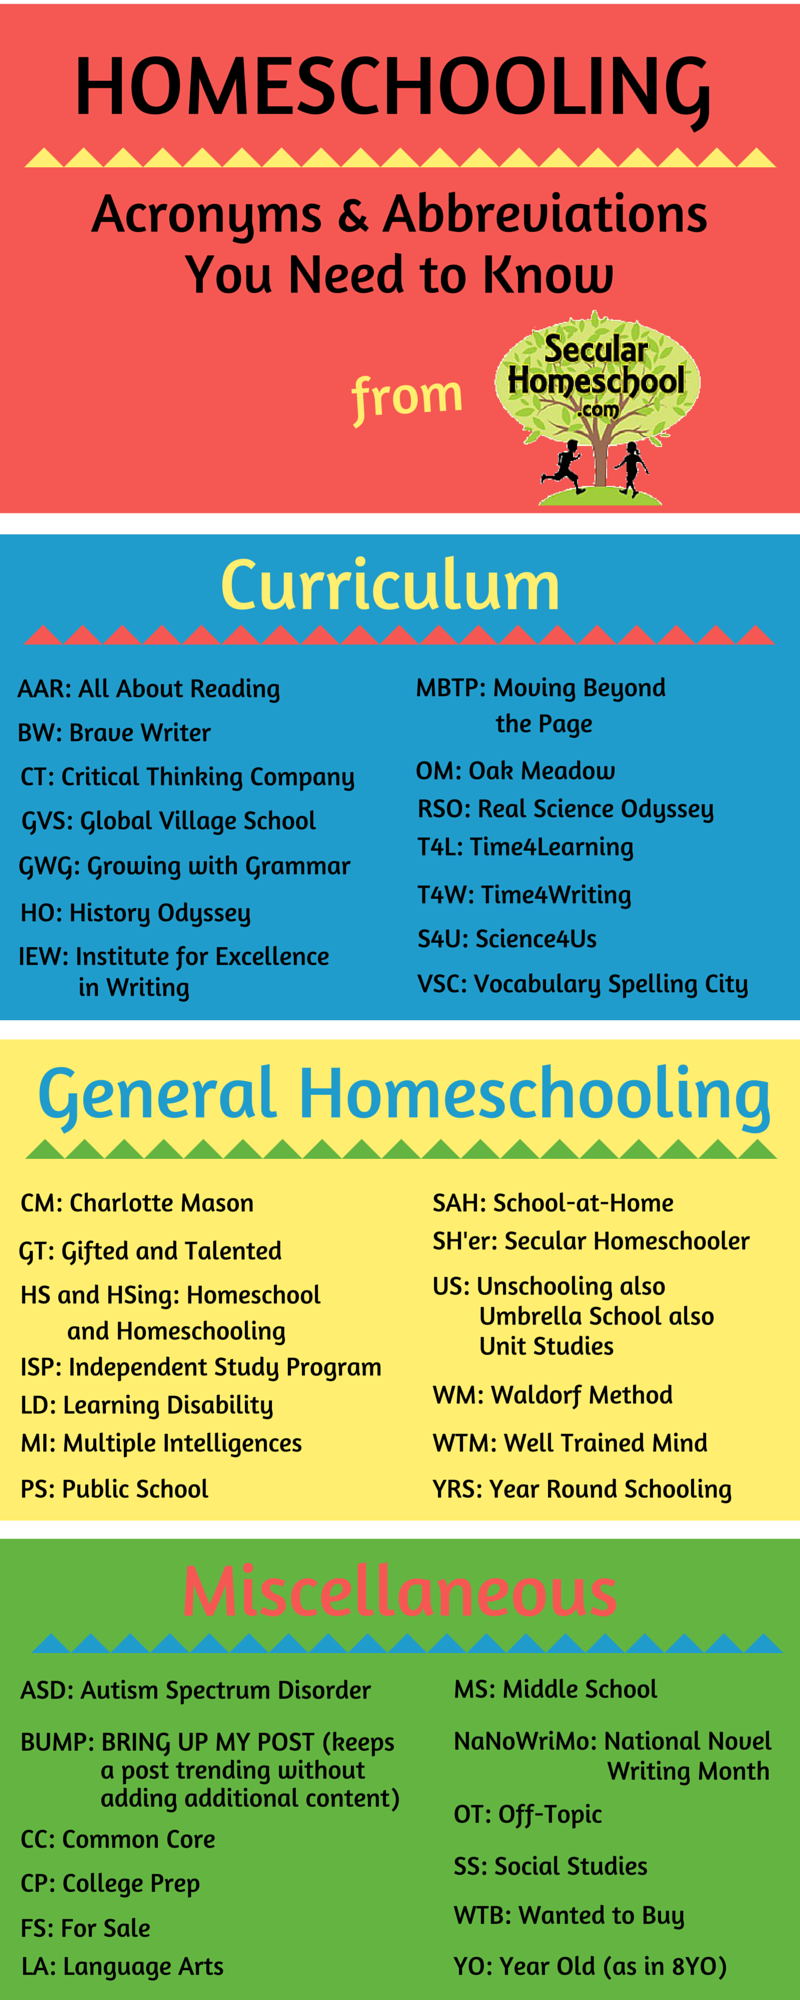 Finally An Infographic That Helps Make Sense Of All The Homeschool